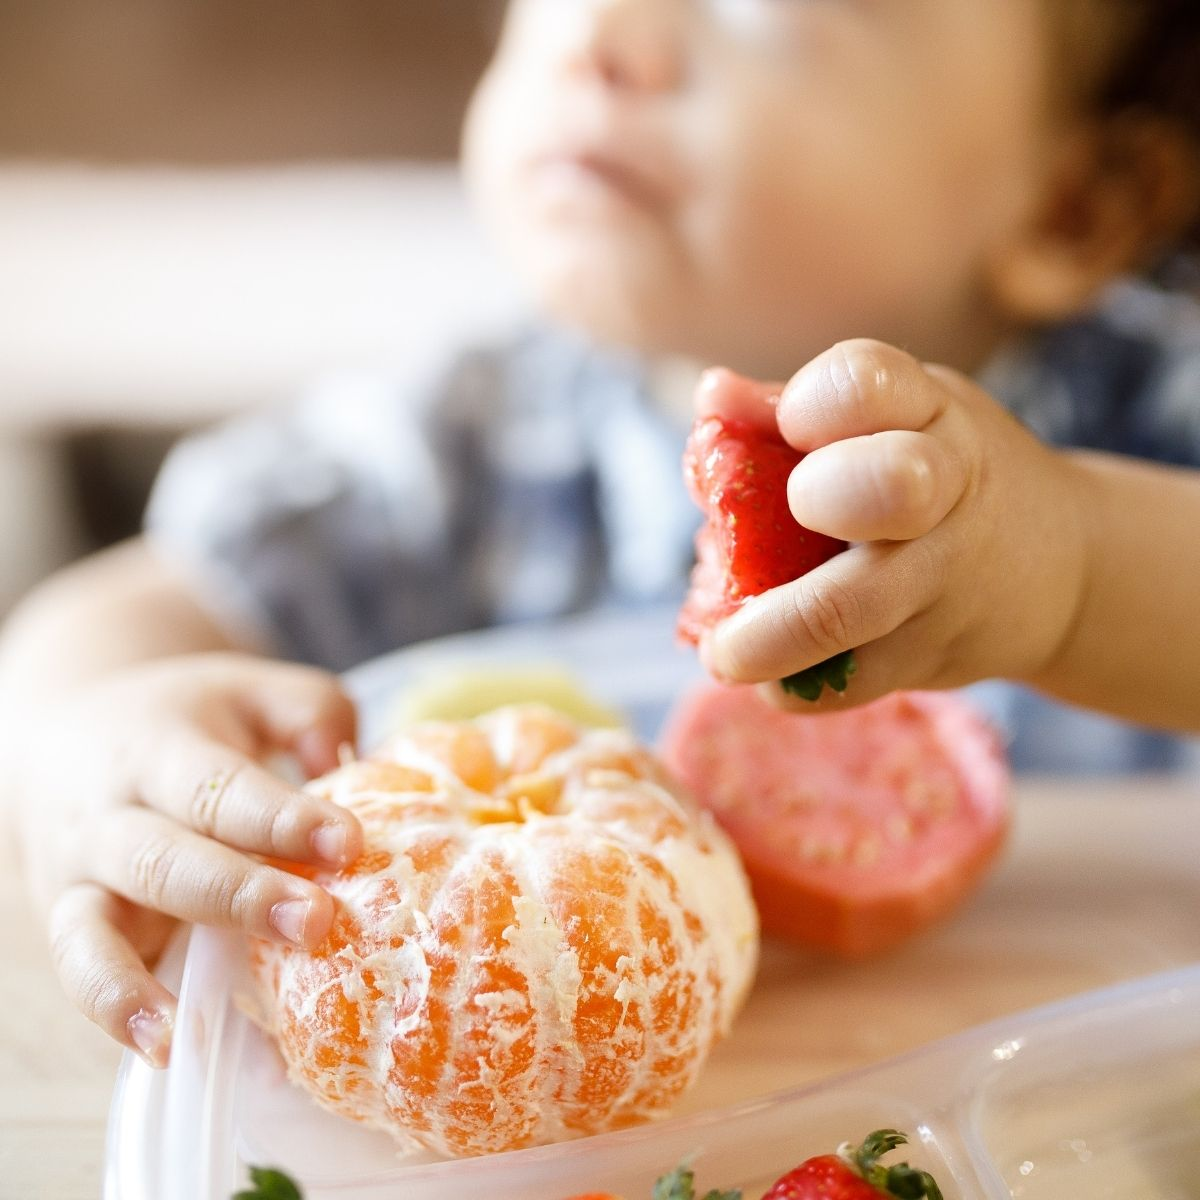 First foods for baby led weaning.